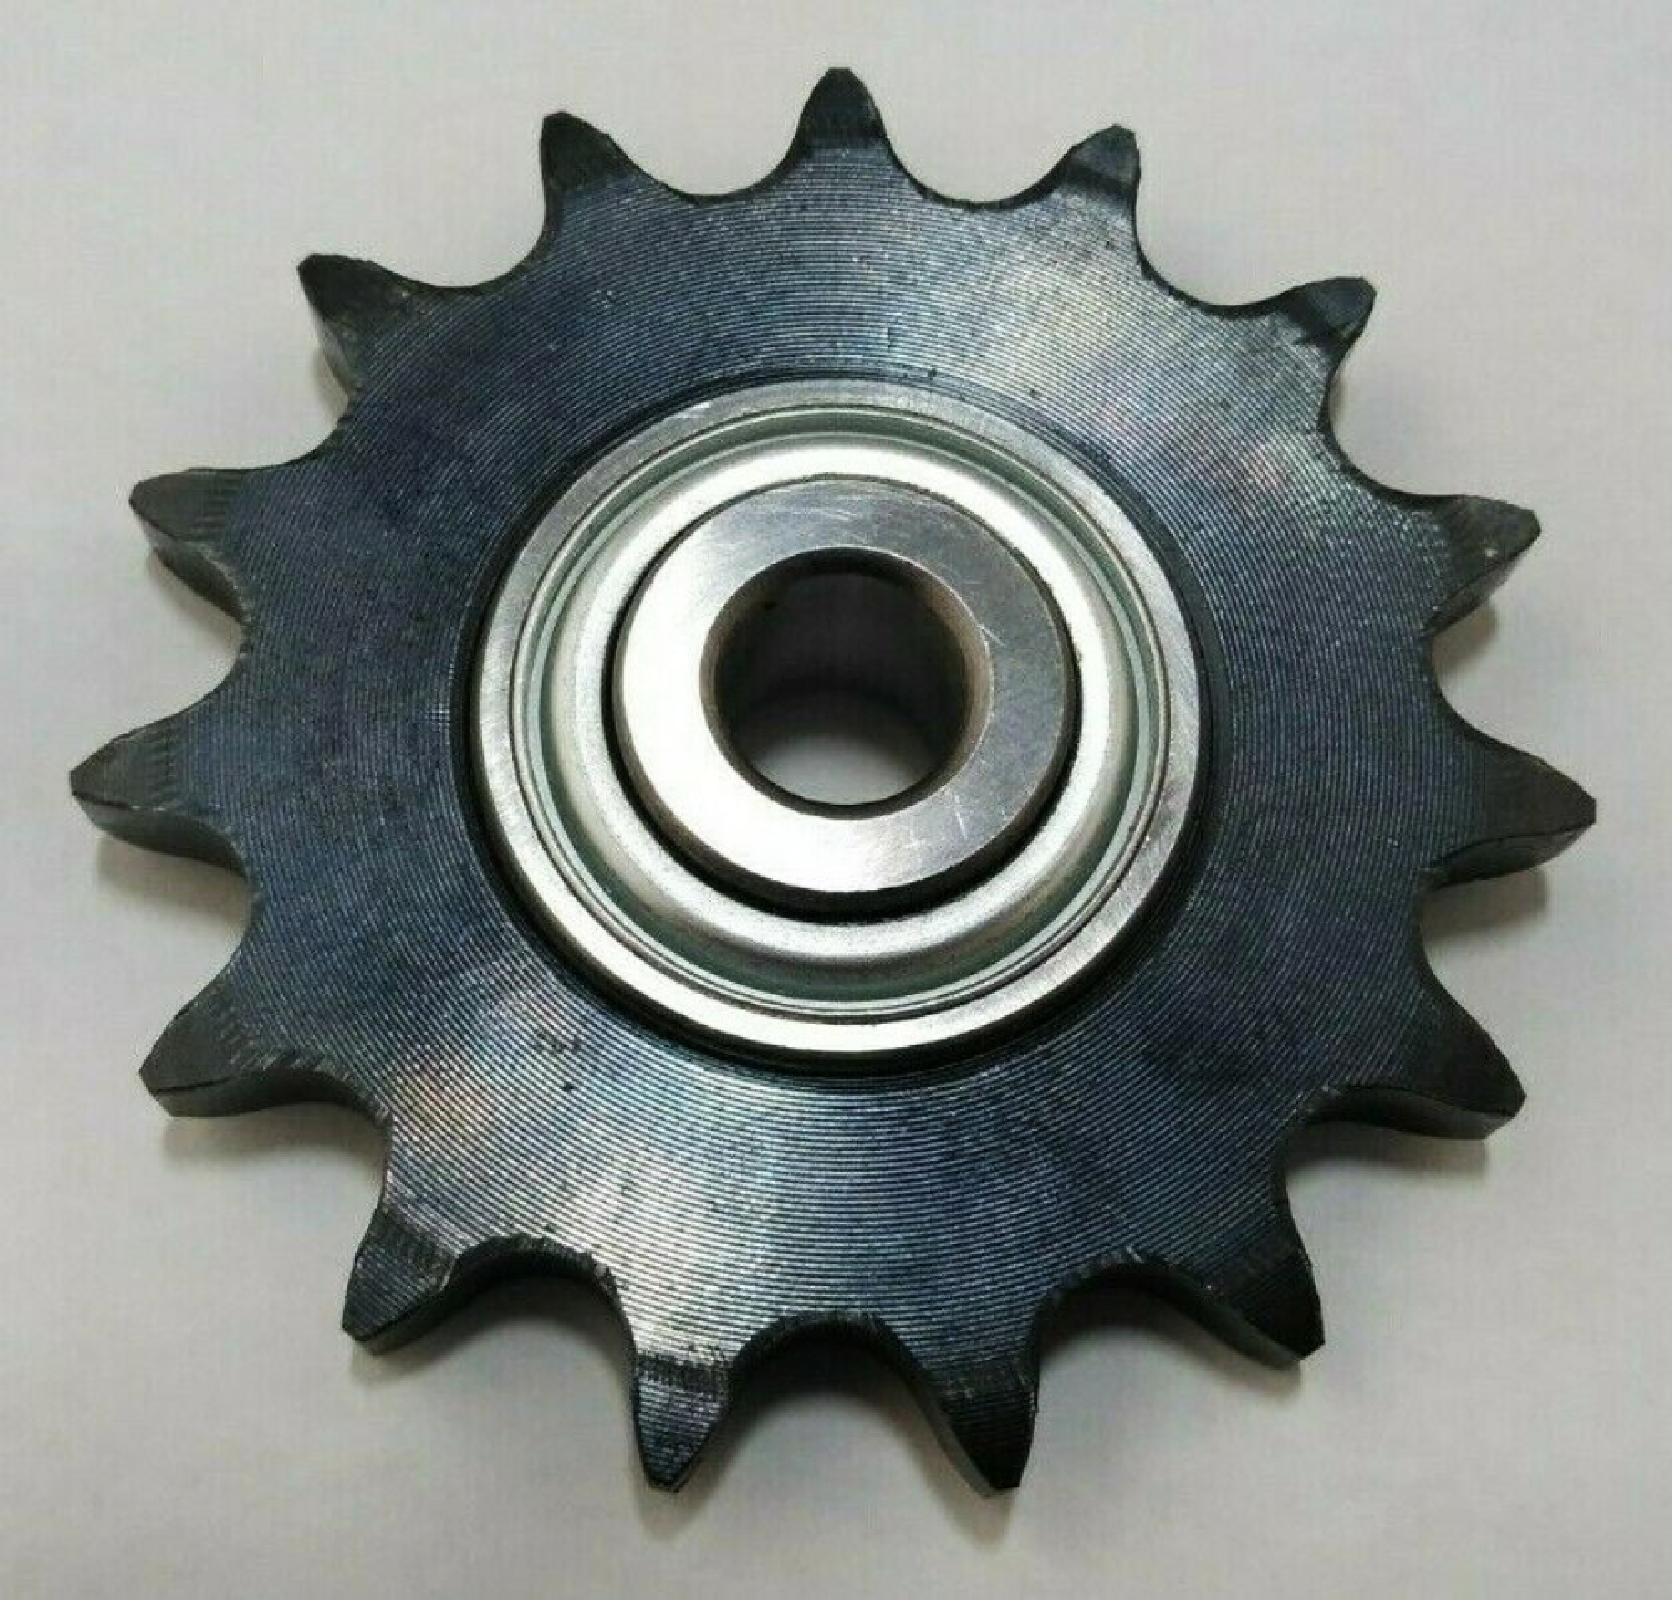 "Roller chain idler sprocket 15 teeth 1/2"" bore replaces 126-9108"